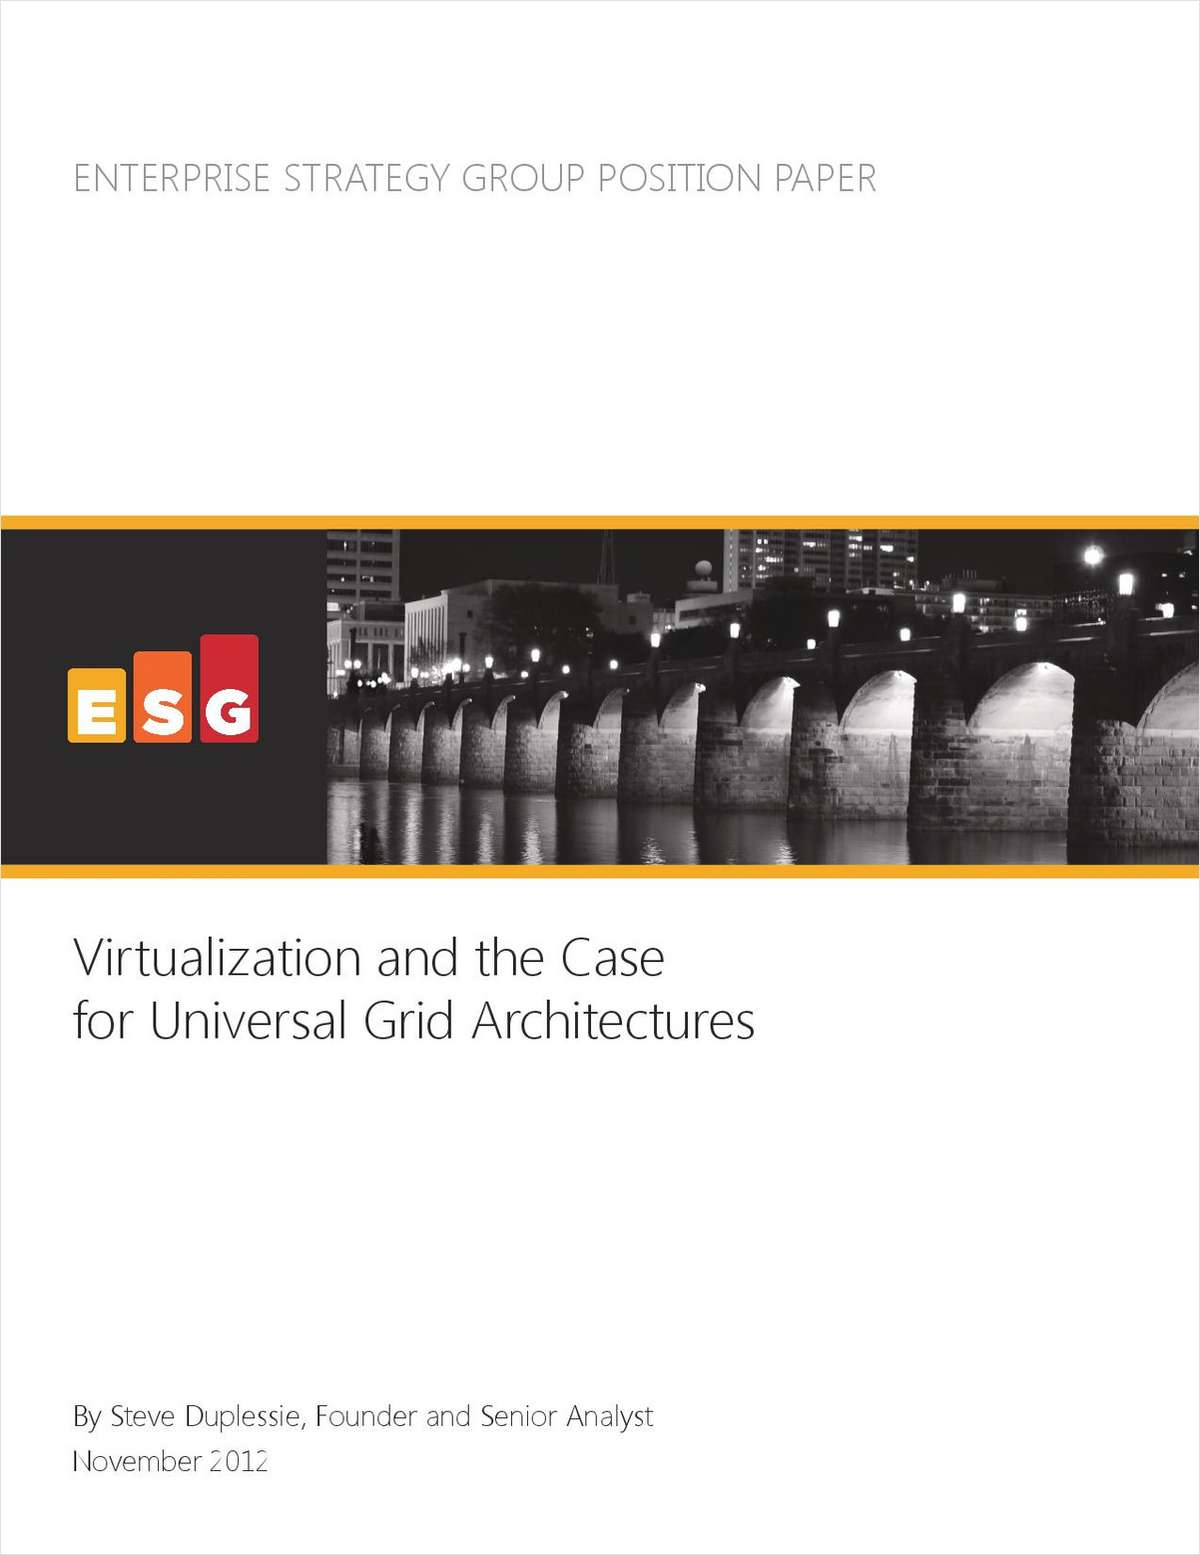 Virtualization and the Case for Universal Grid Architectures